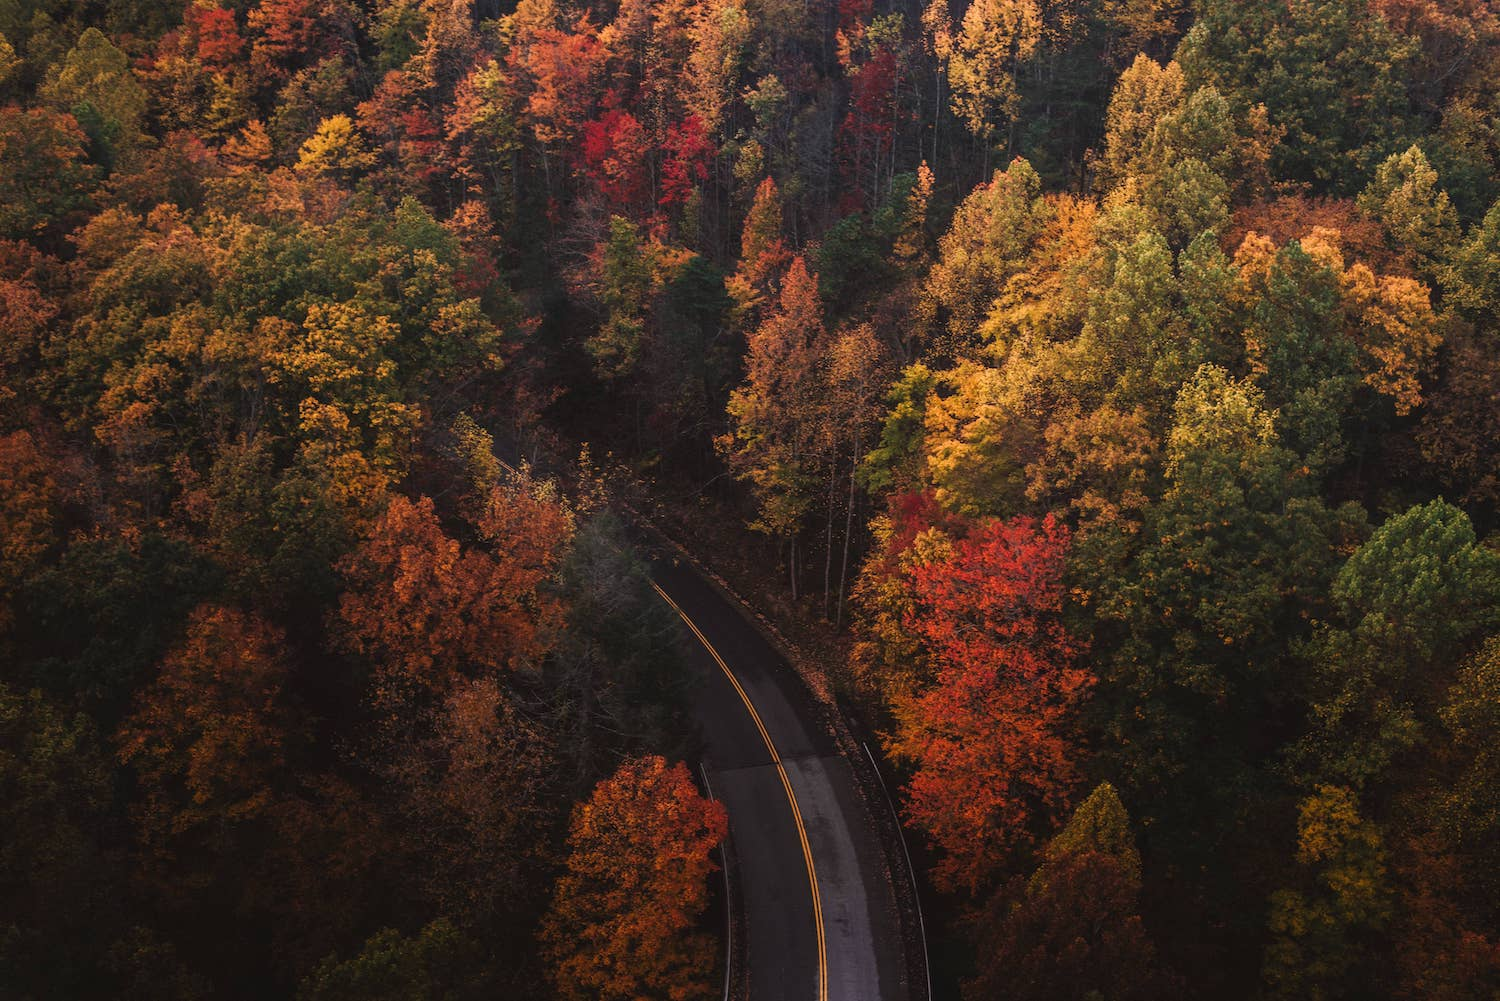 autumn colors with a road chad-madden-